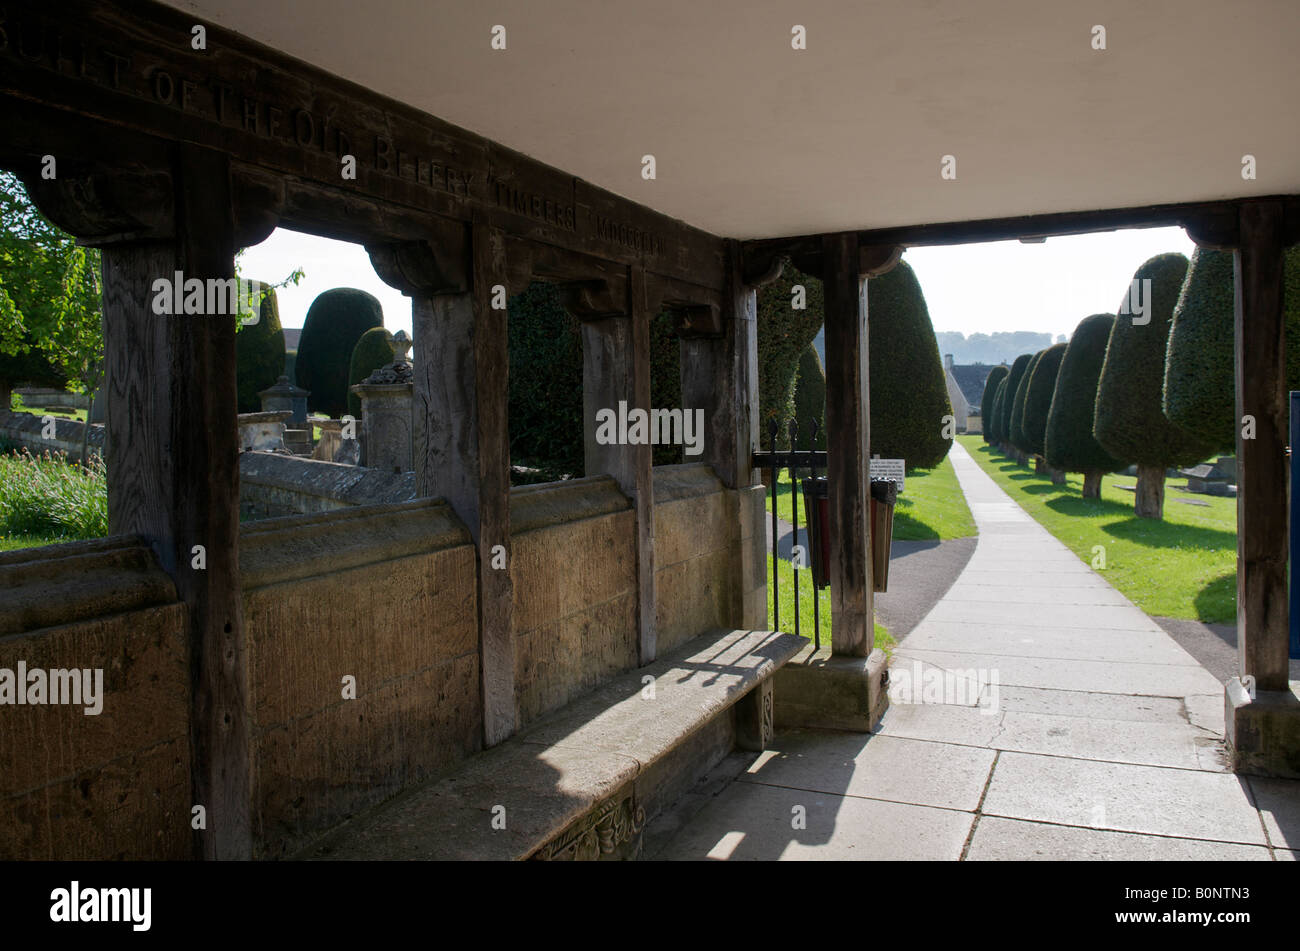 Yew trees in St Mary's church at Painswick in the Cotswolds looking through the lych-gate - Stock Image